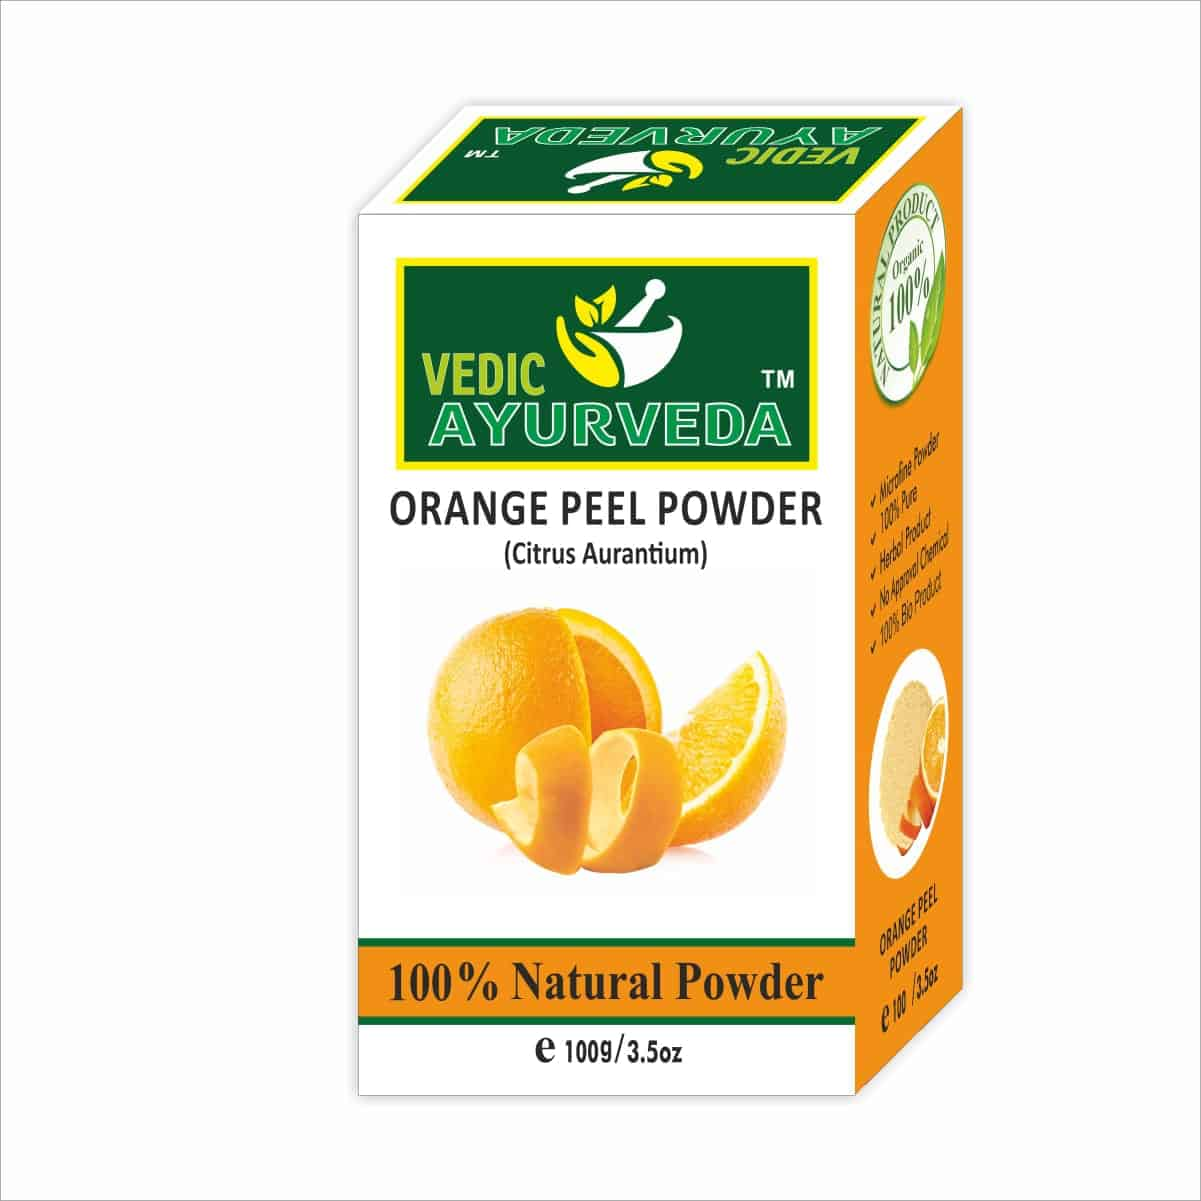 vedicayurvedas orange peel